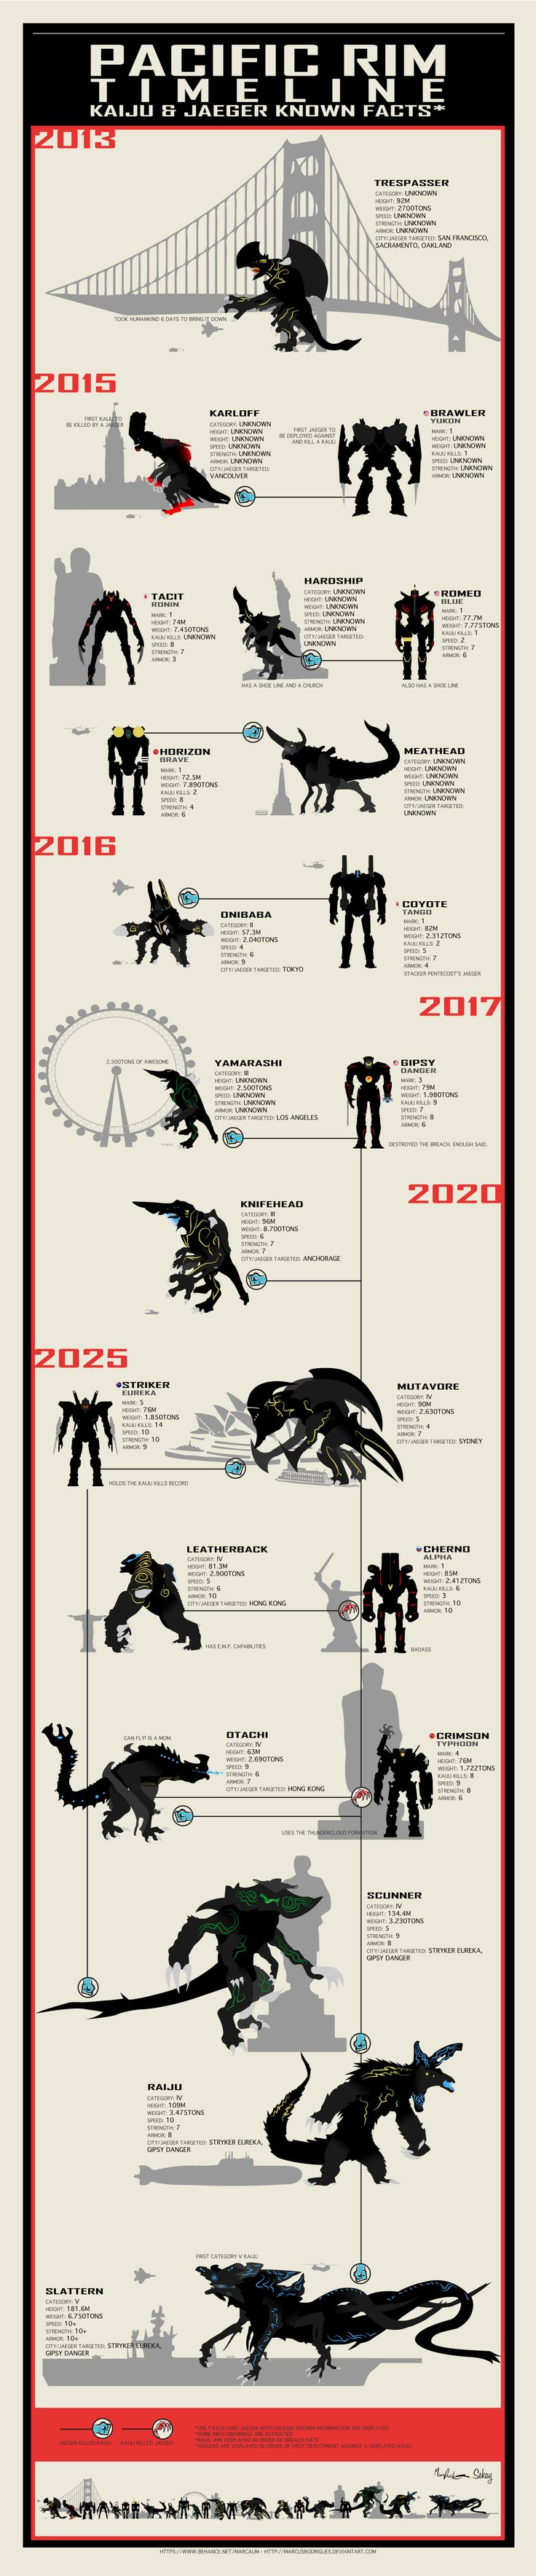 Pacific Rim Infographic by marcusrodrigues on deviantART